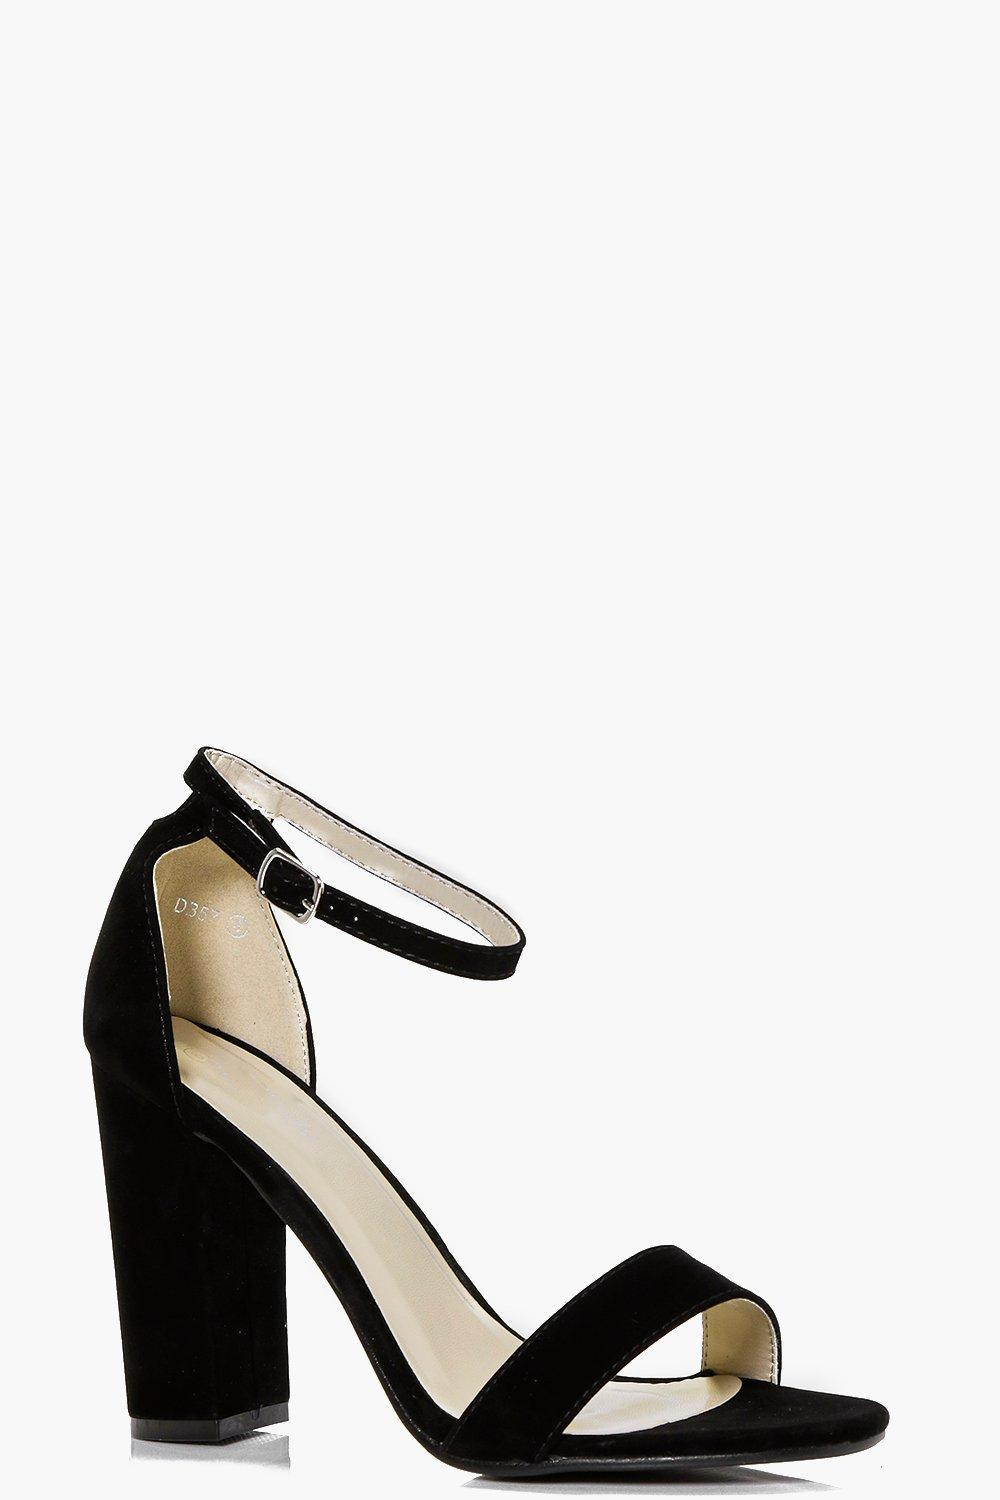 Peeptoe Block Heel Black - predominant colour: black; occasions: evening; material: suede; heel height: high; ankle detail: ankle strap; heel: block; toe: open toe/peeptoe; style: standard; finish: plain; pattern: plain; season: s/s 2016; wardrobe: event